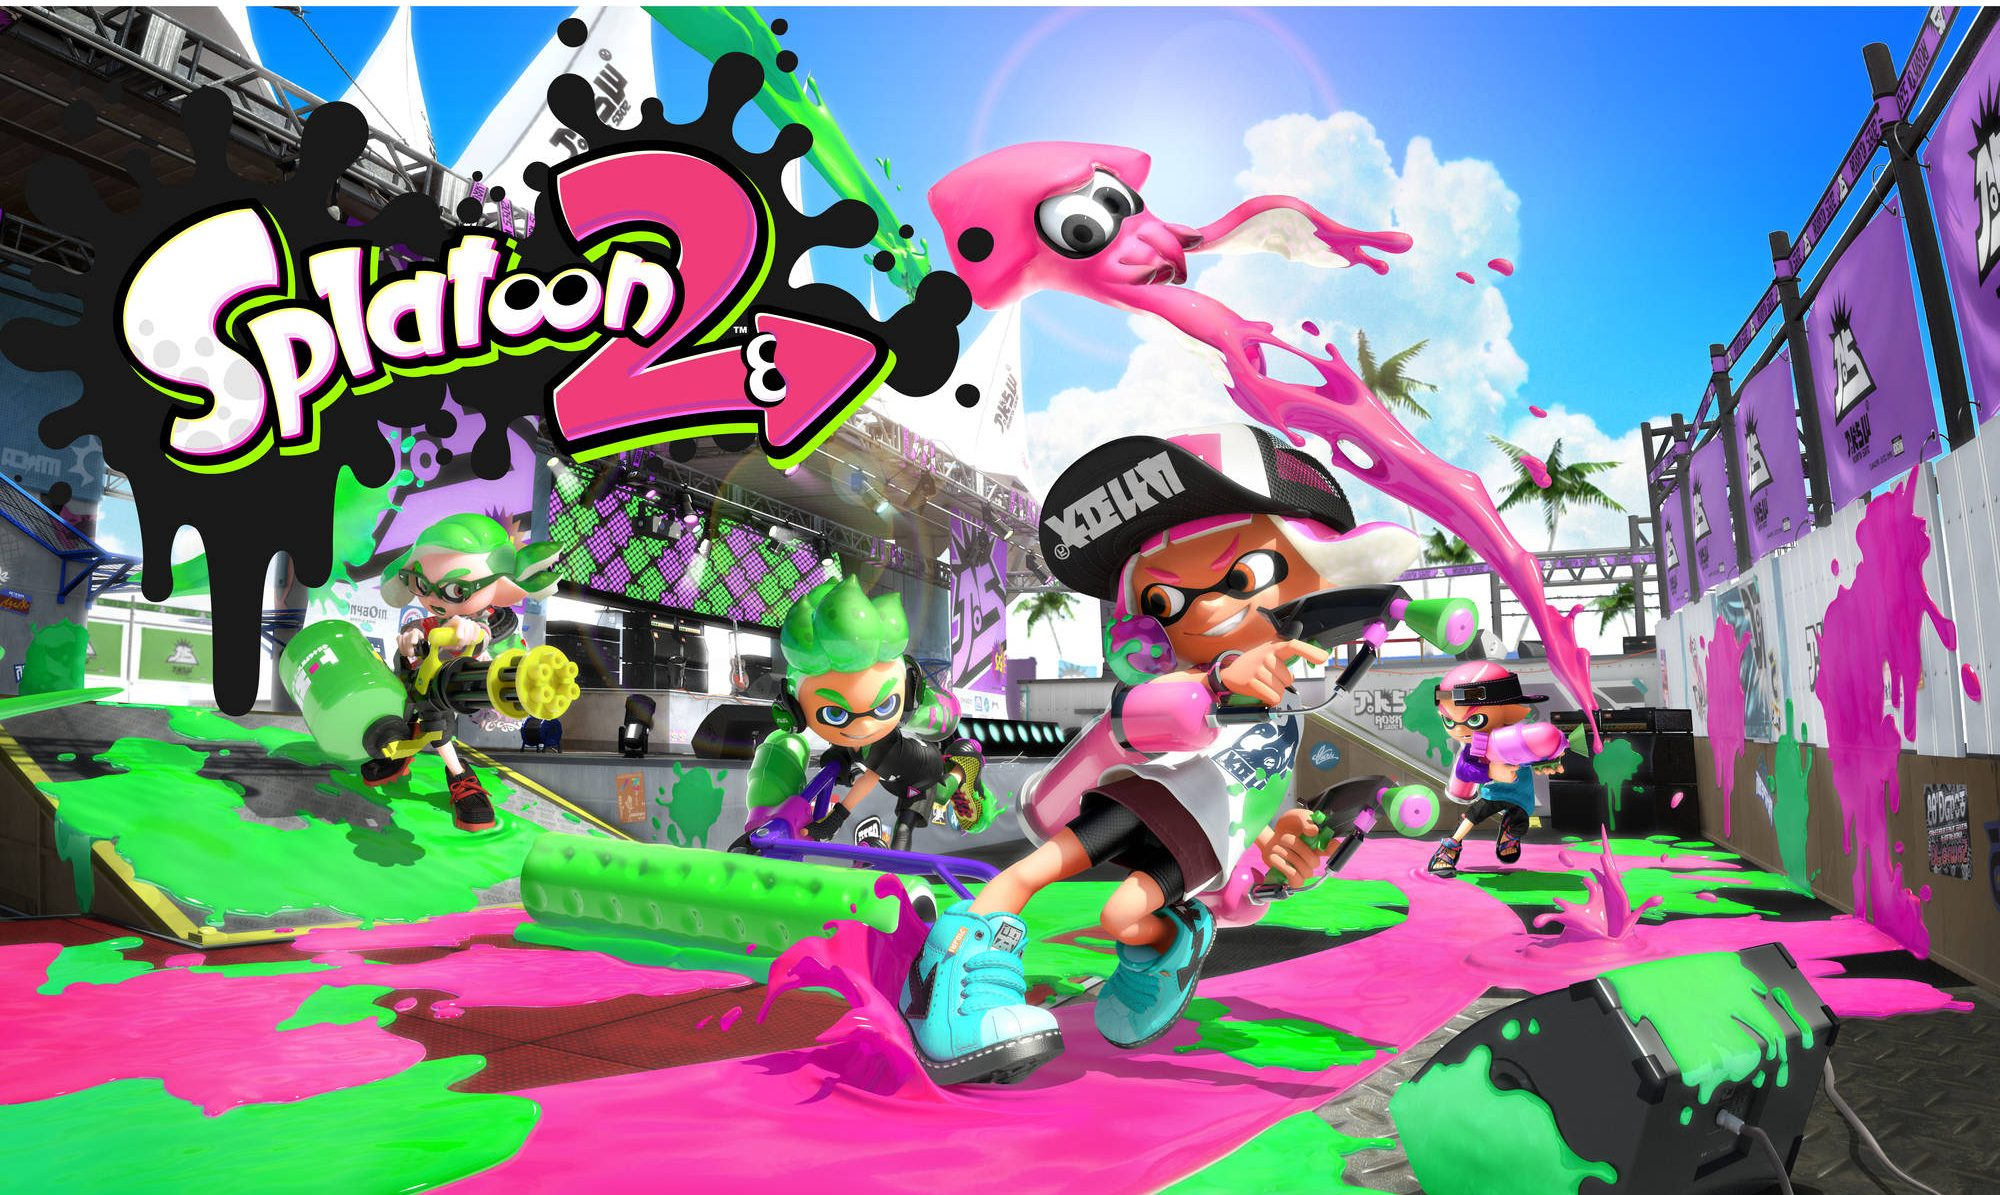 Splatoon 2 Japan Expo